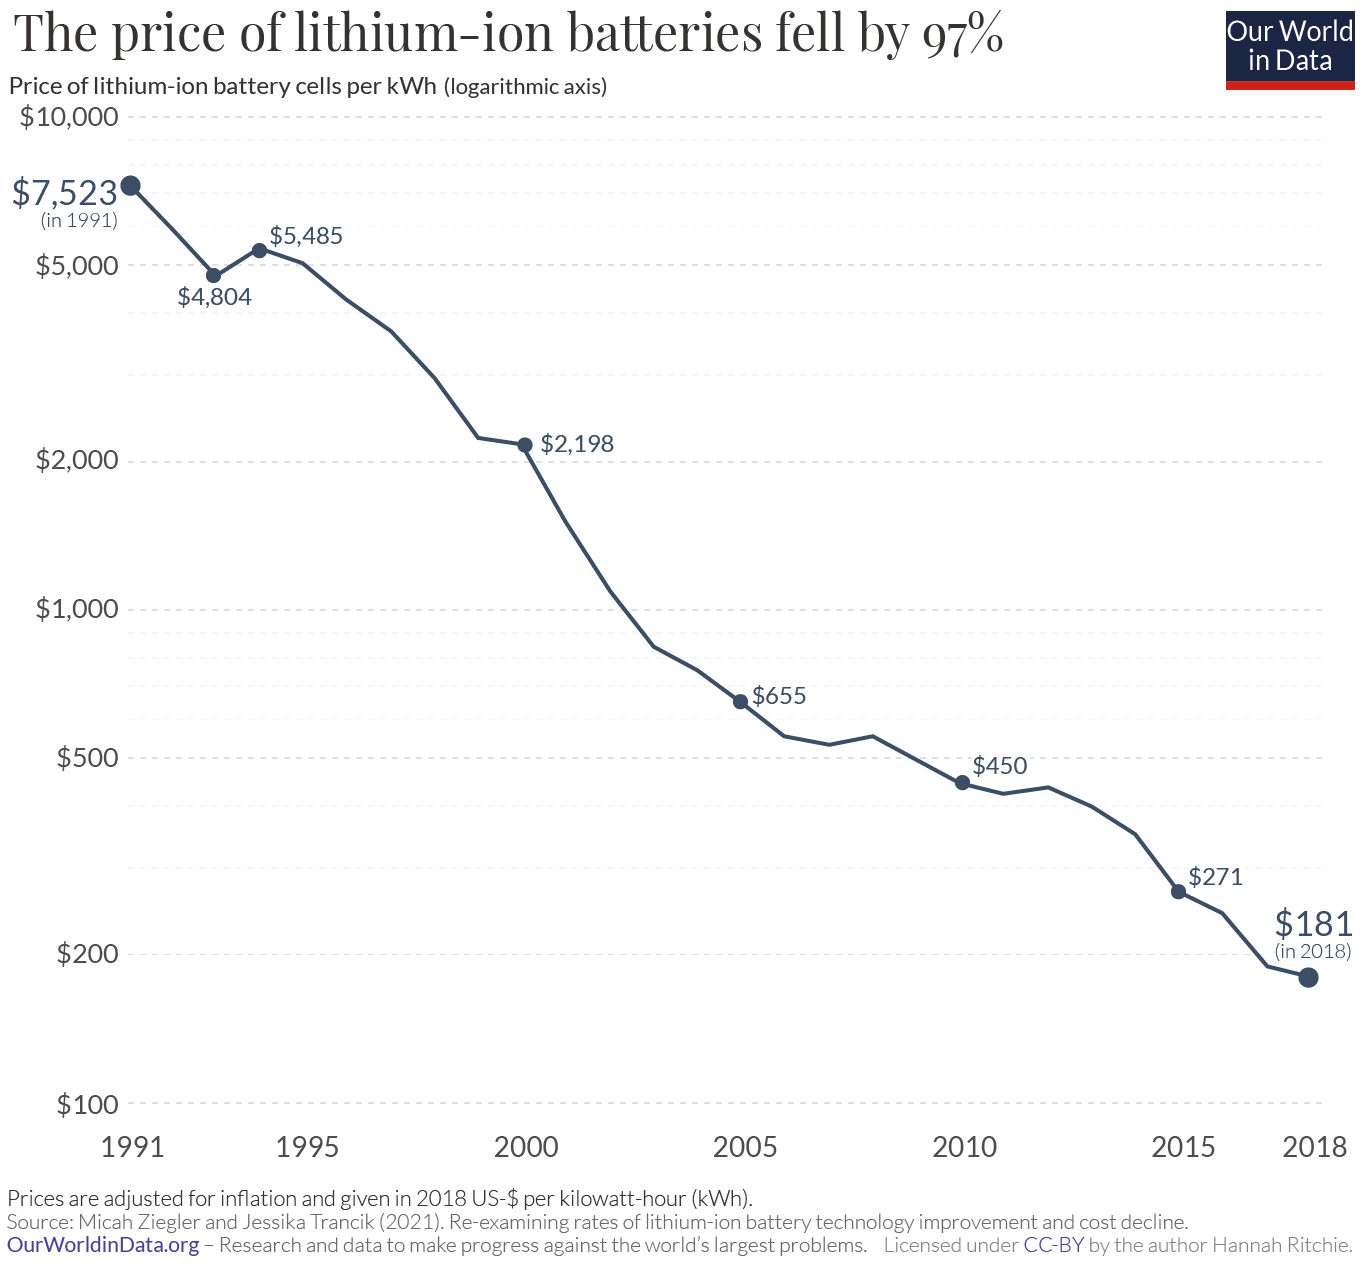 Battery cost decline